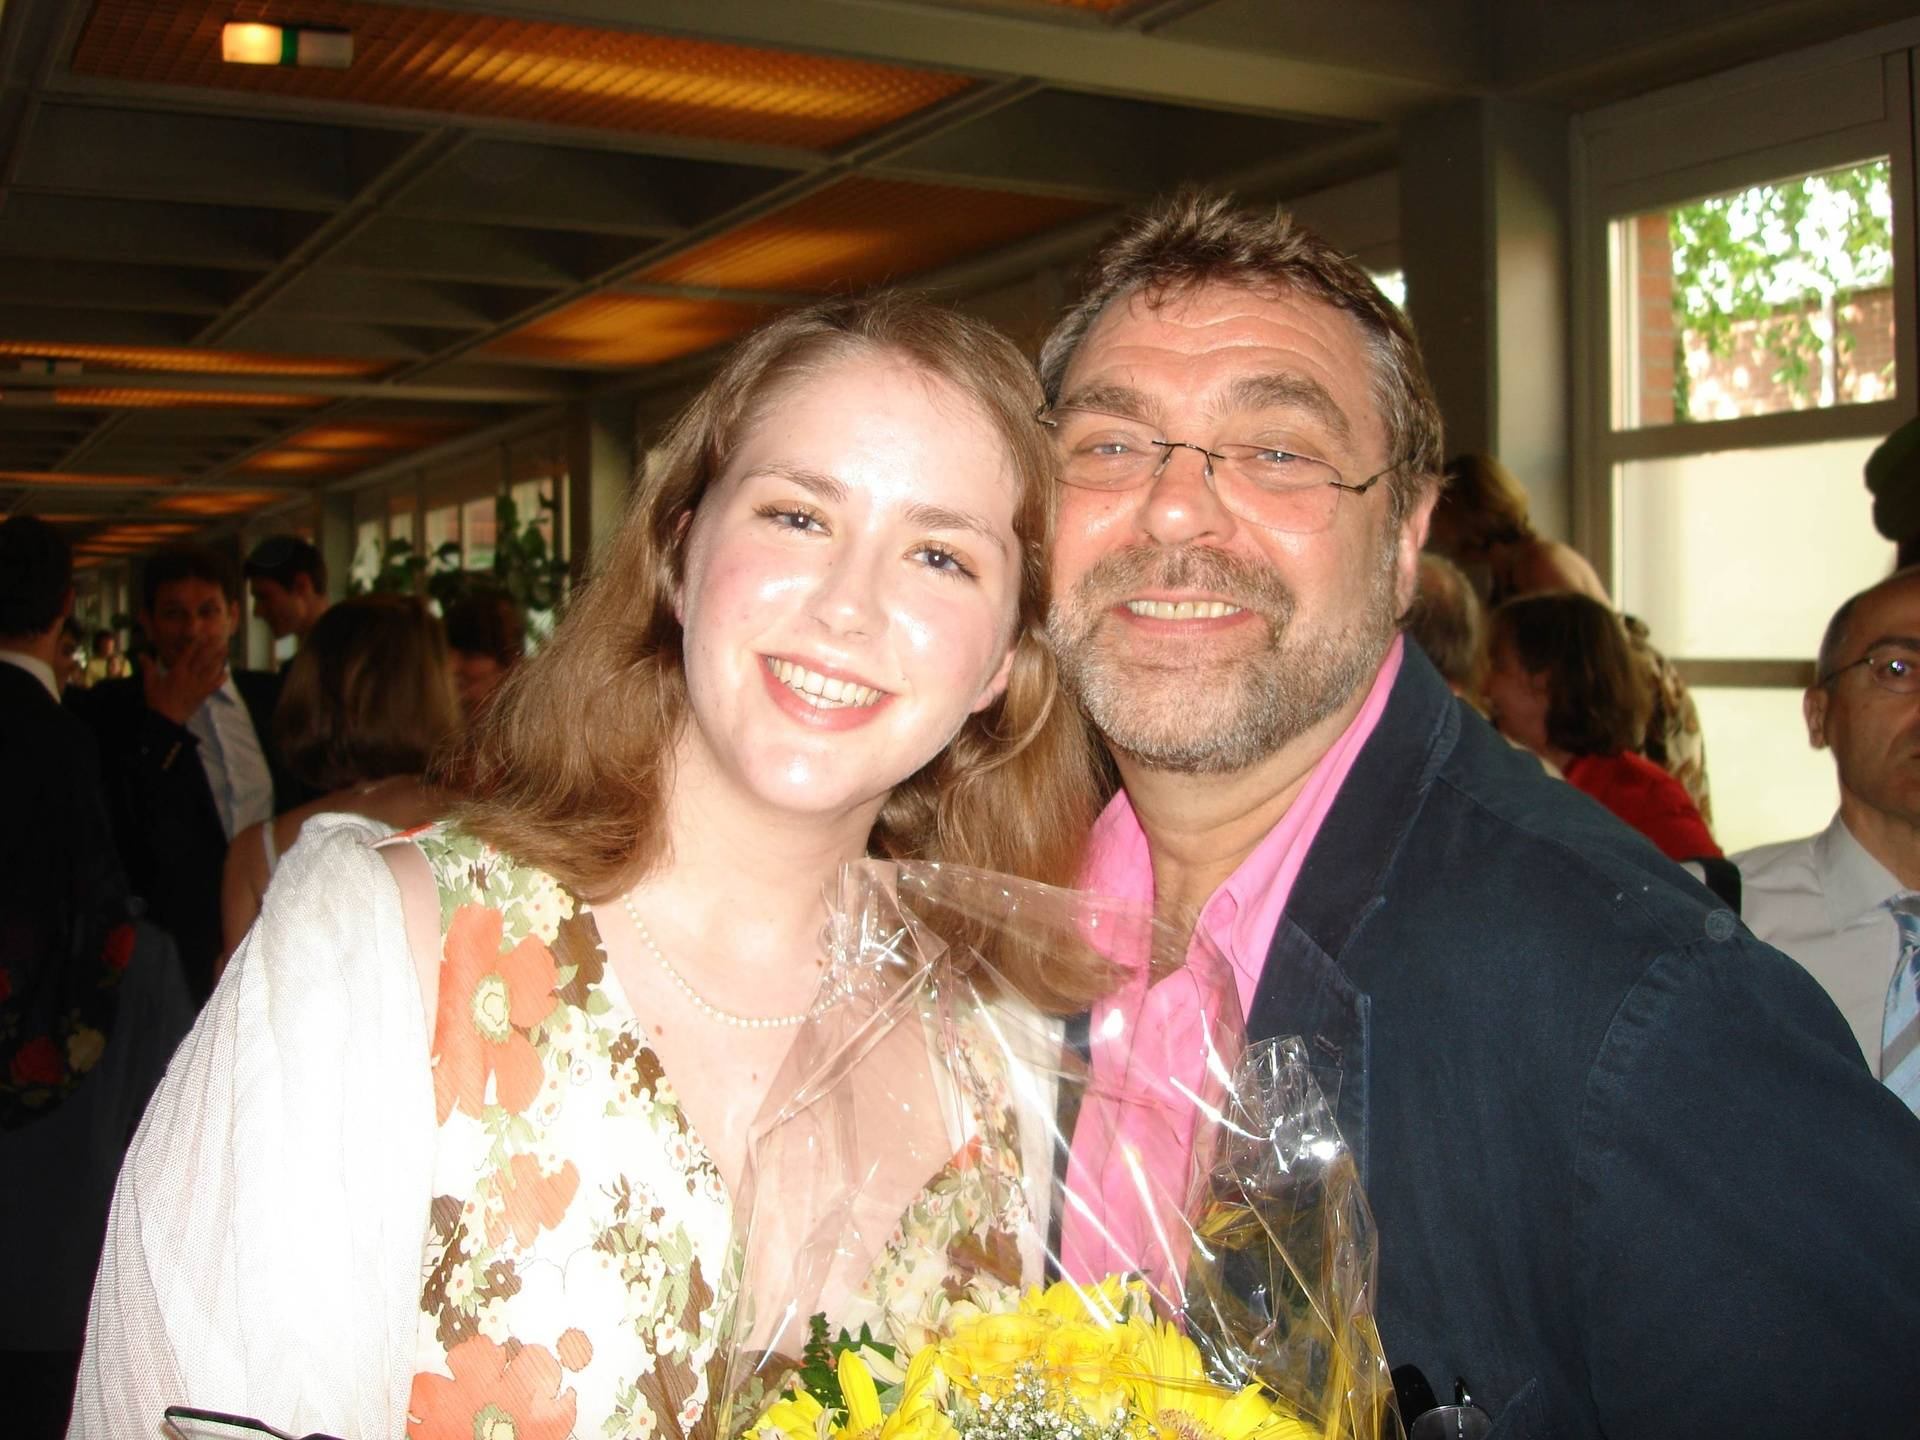 Me and Madeleine at her prize winning